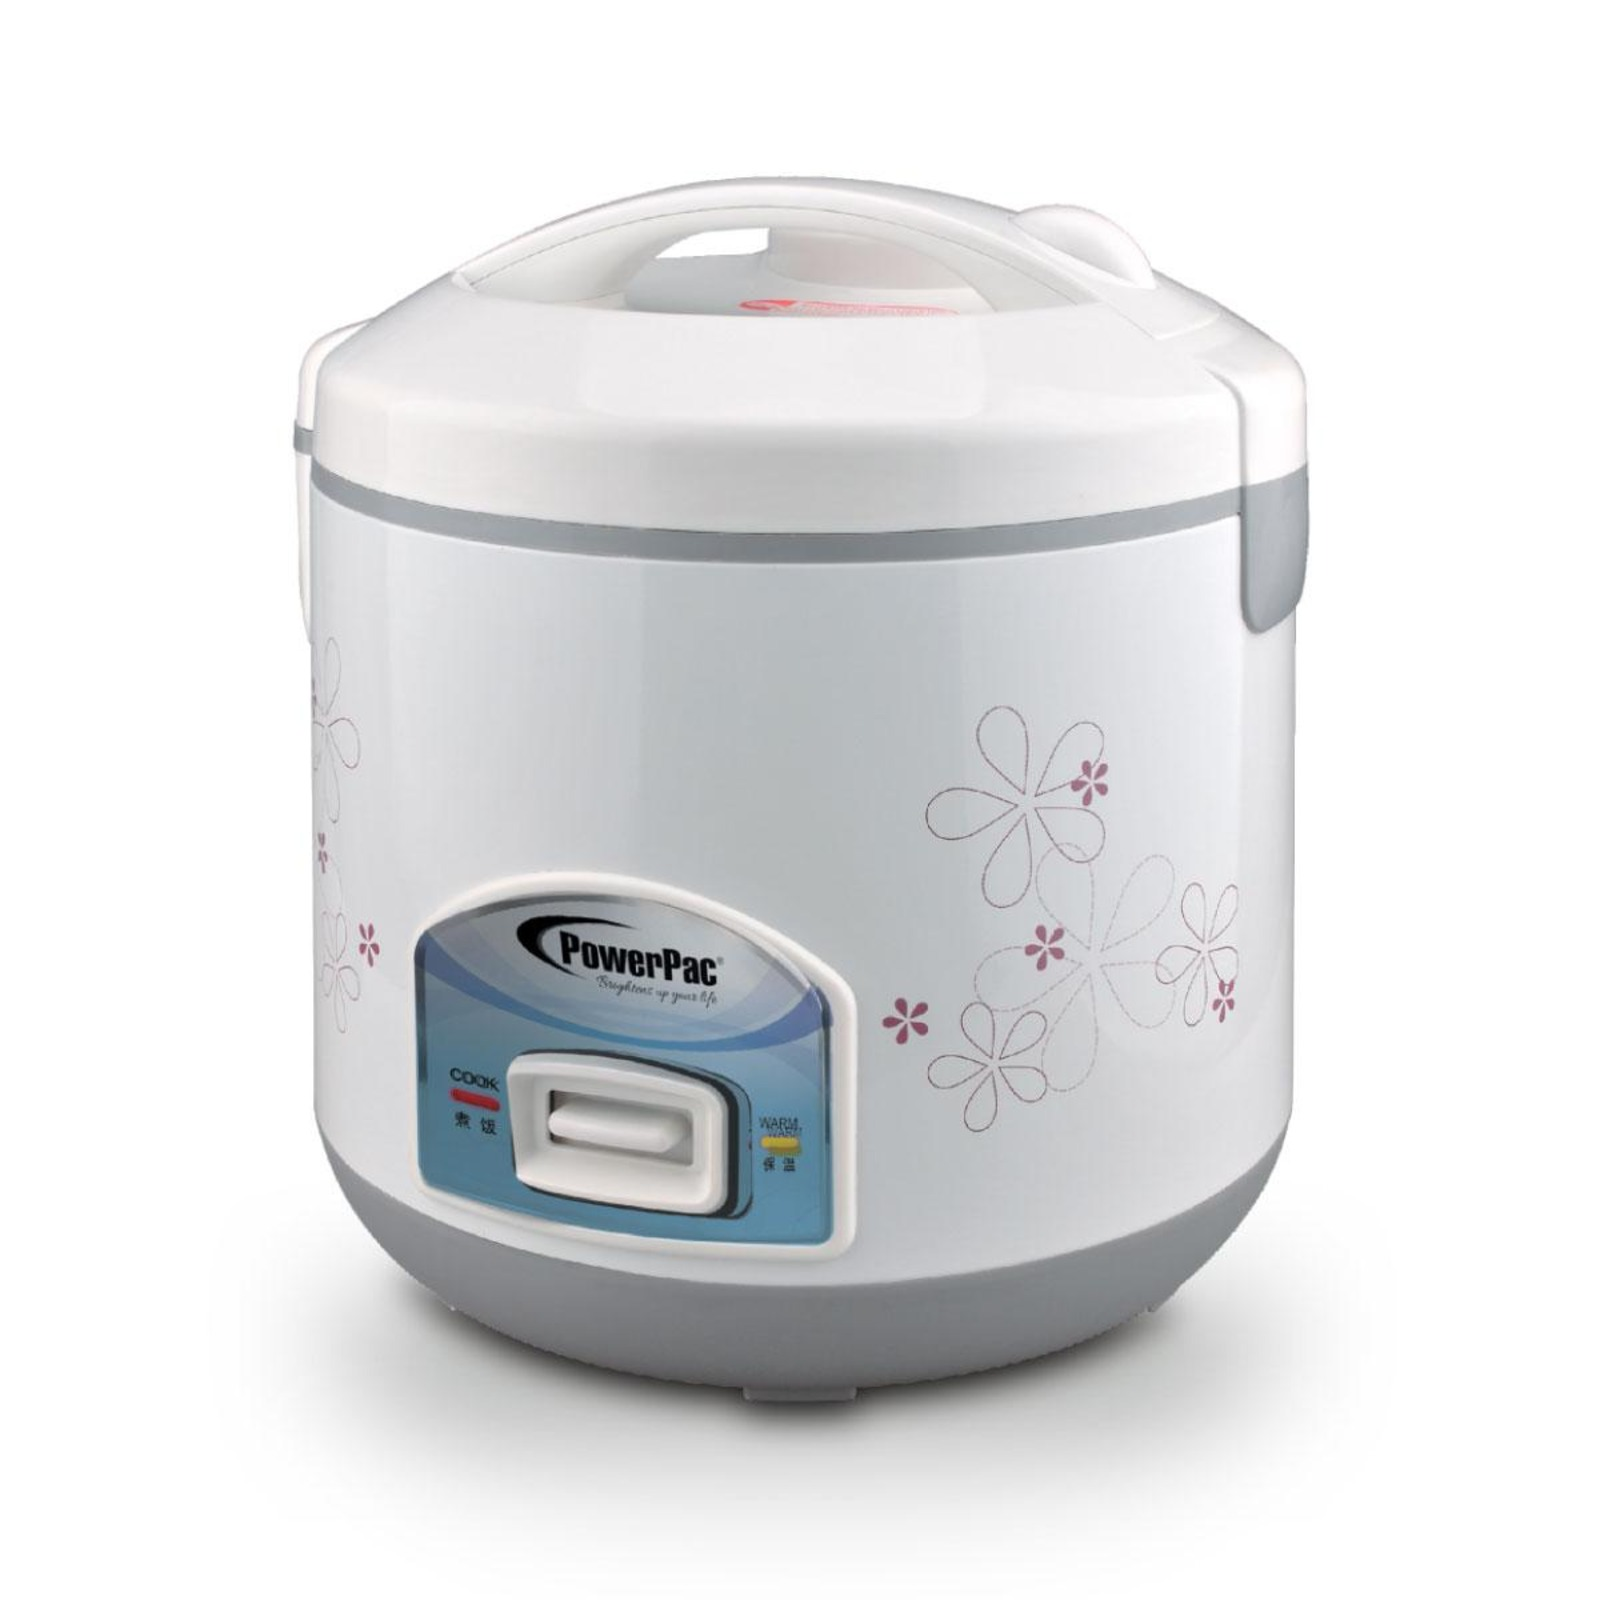 PowerPac 1.2L Rice Cooker With Steamer - PPRC12